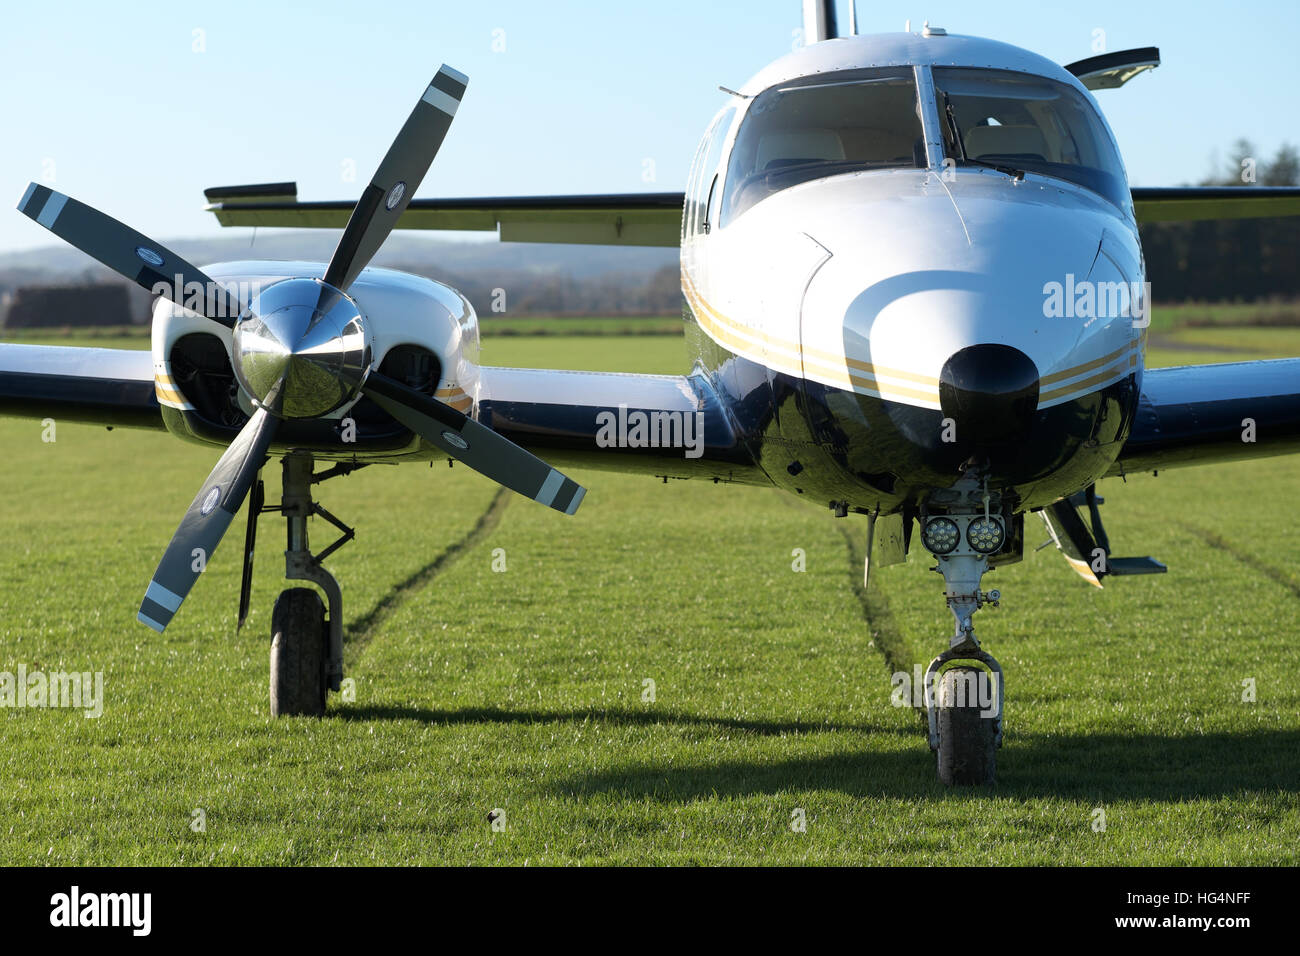 Piper Pa-31 Navajo executive aircraft twin engine propeller airplane built in 1979 - Stock Image